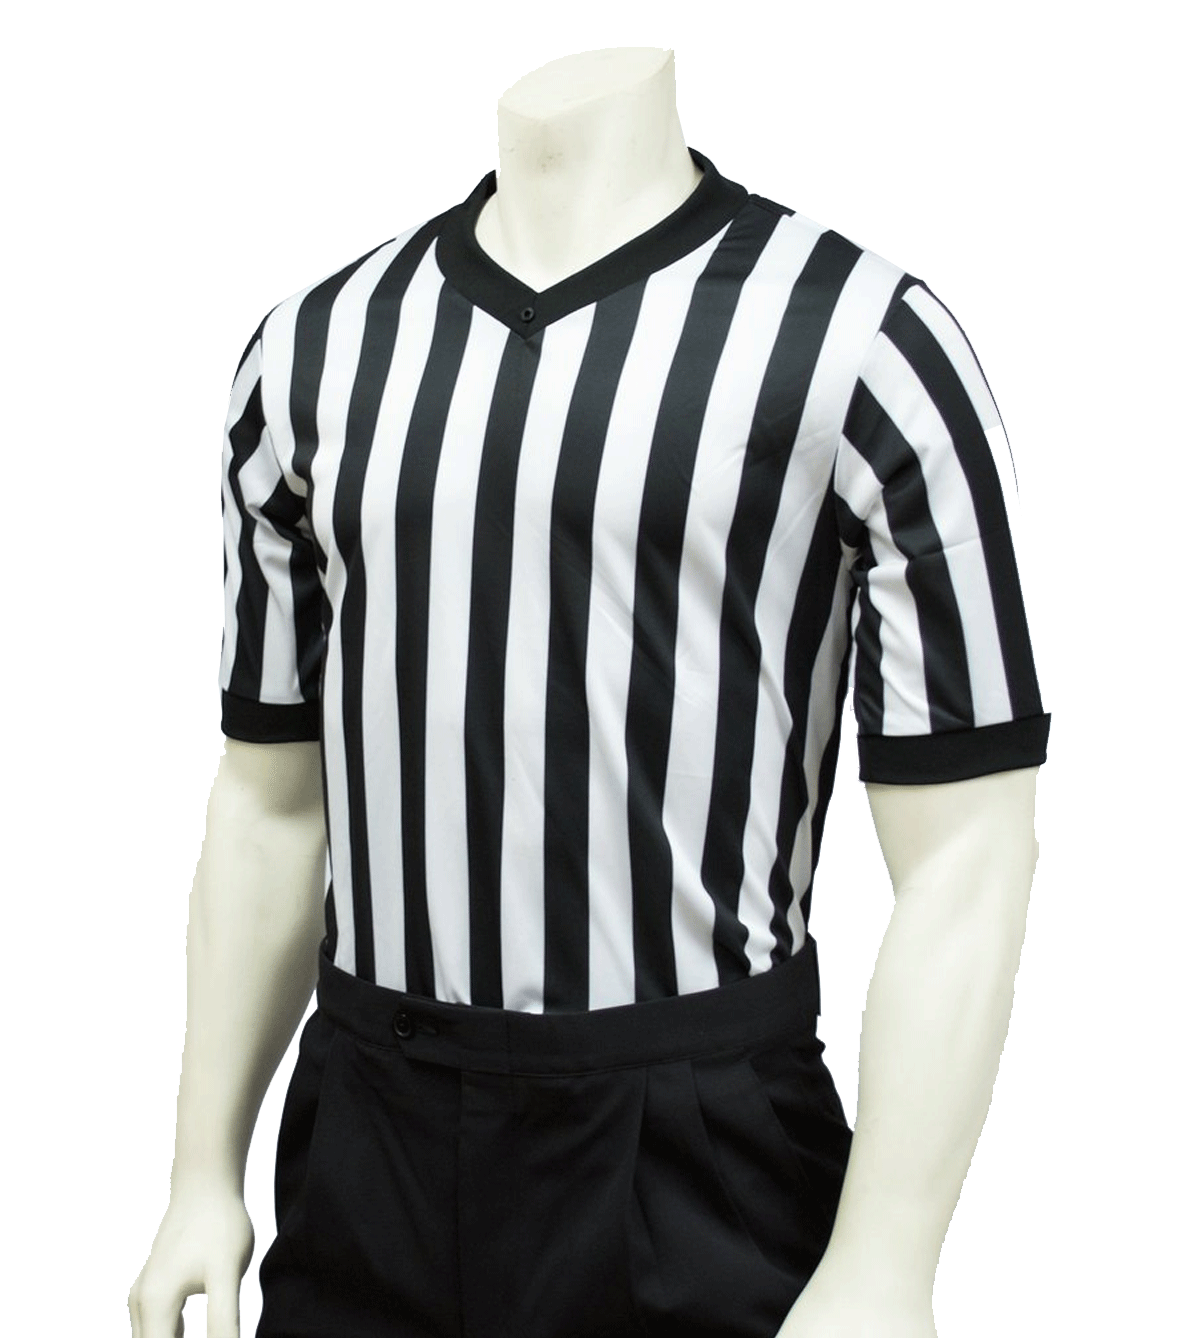 Basketball Referee Shirts